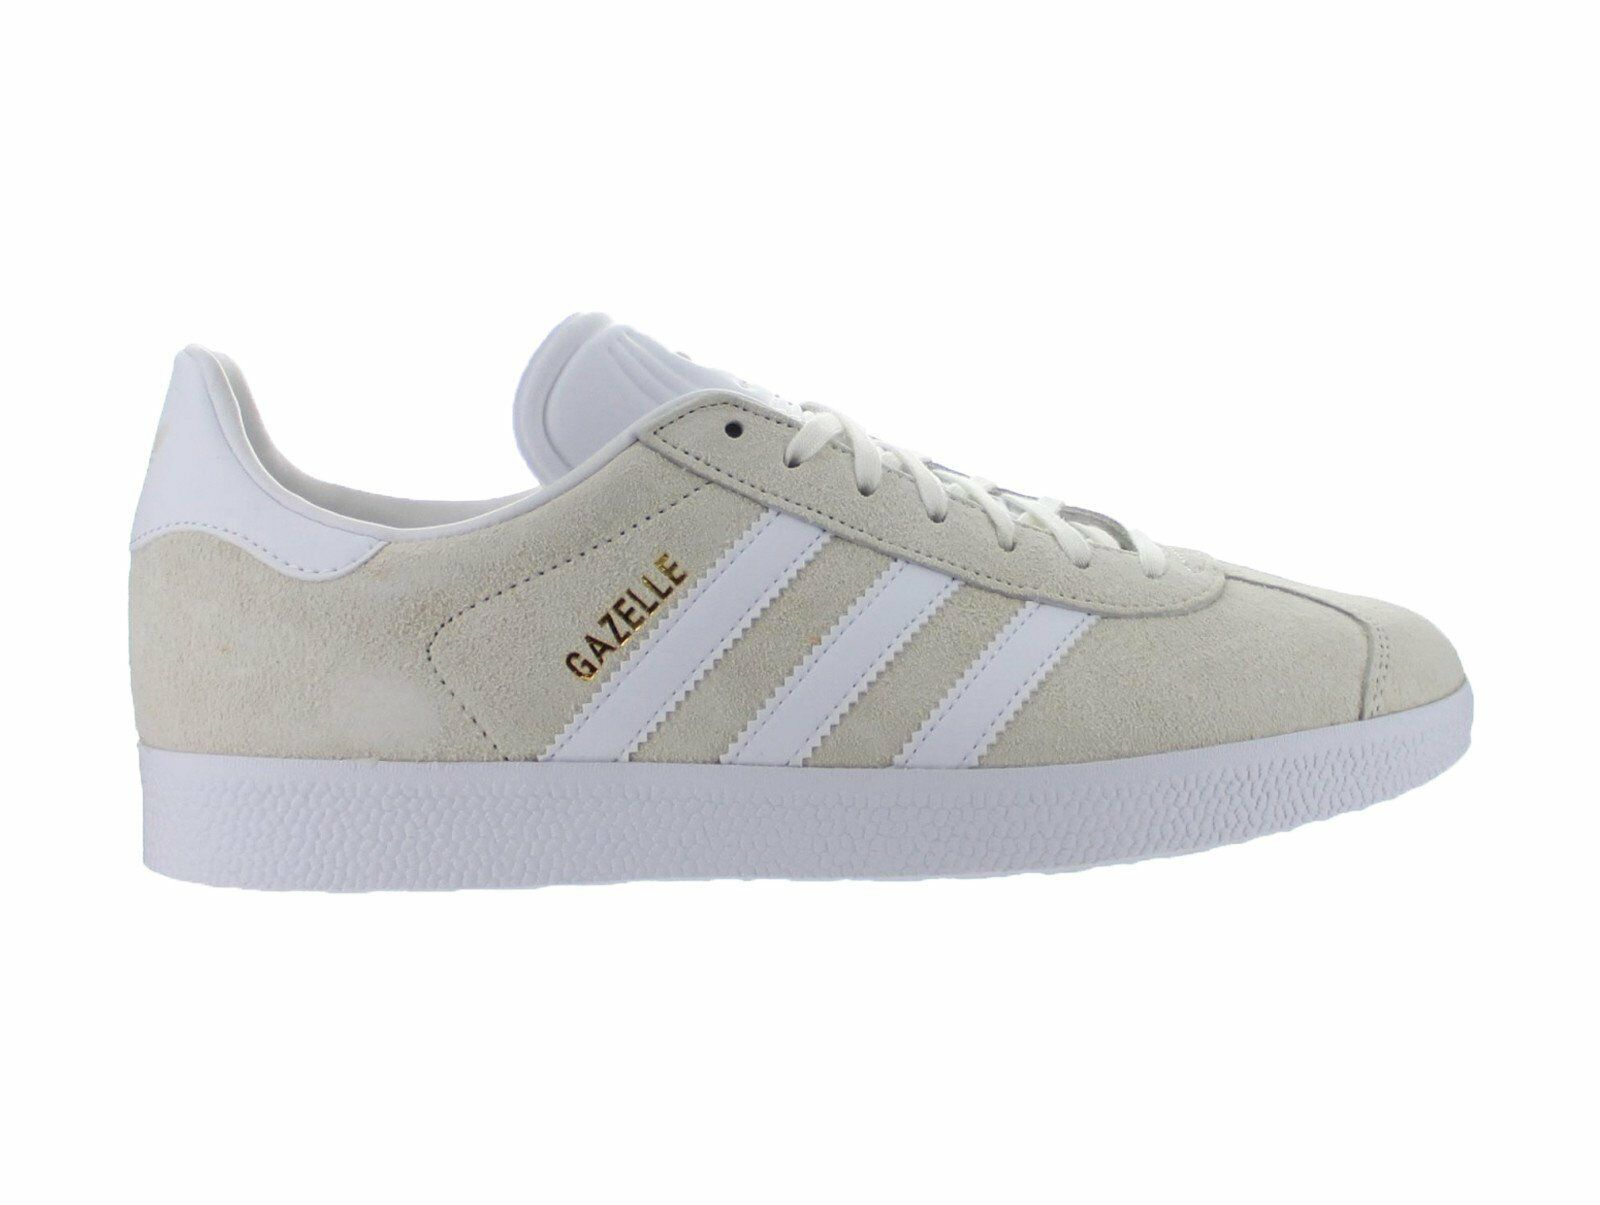 herr Adidas Gazelle Off vit Chalk vit Metallic guld BB5475